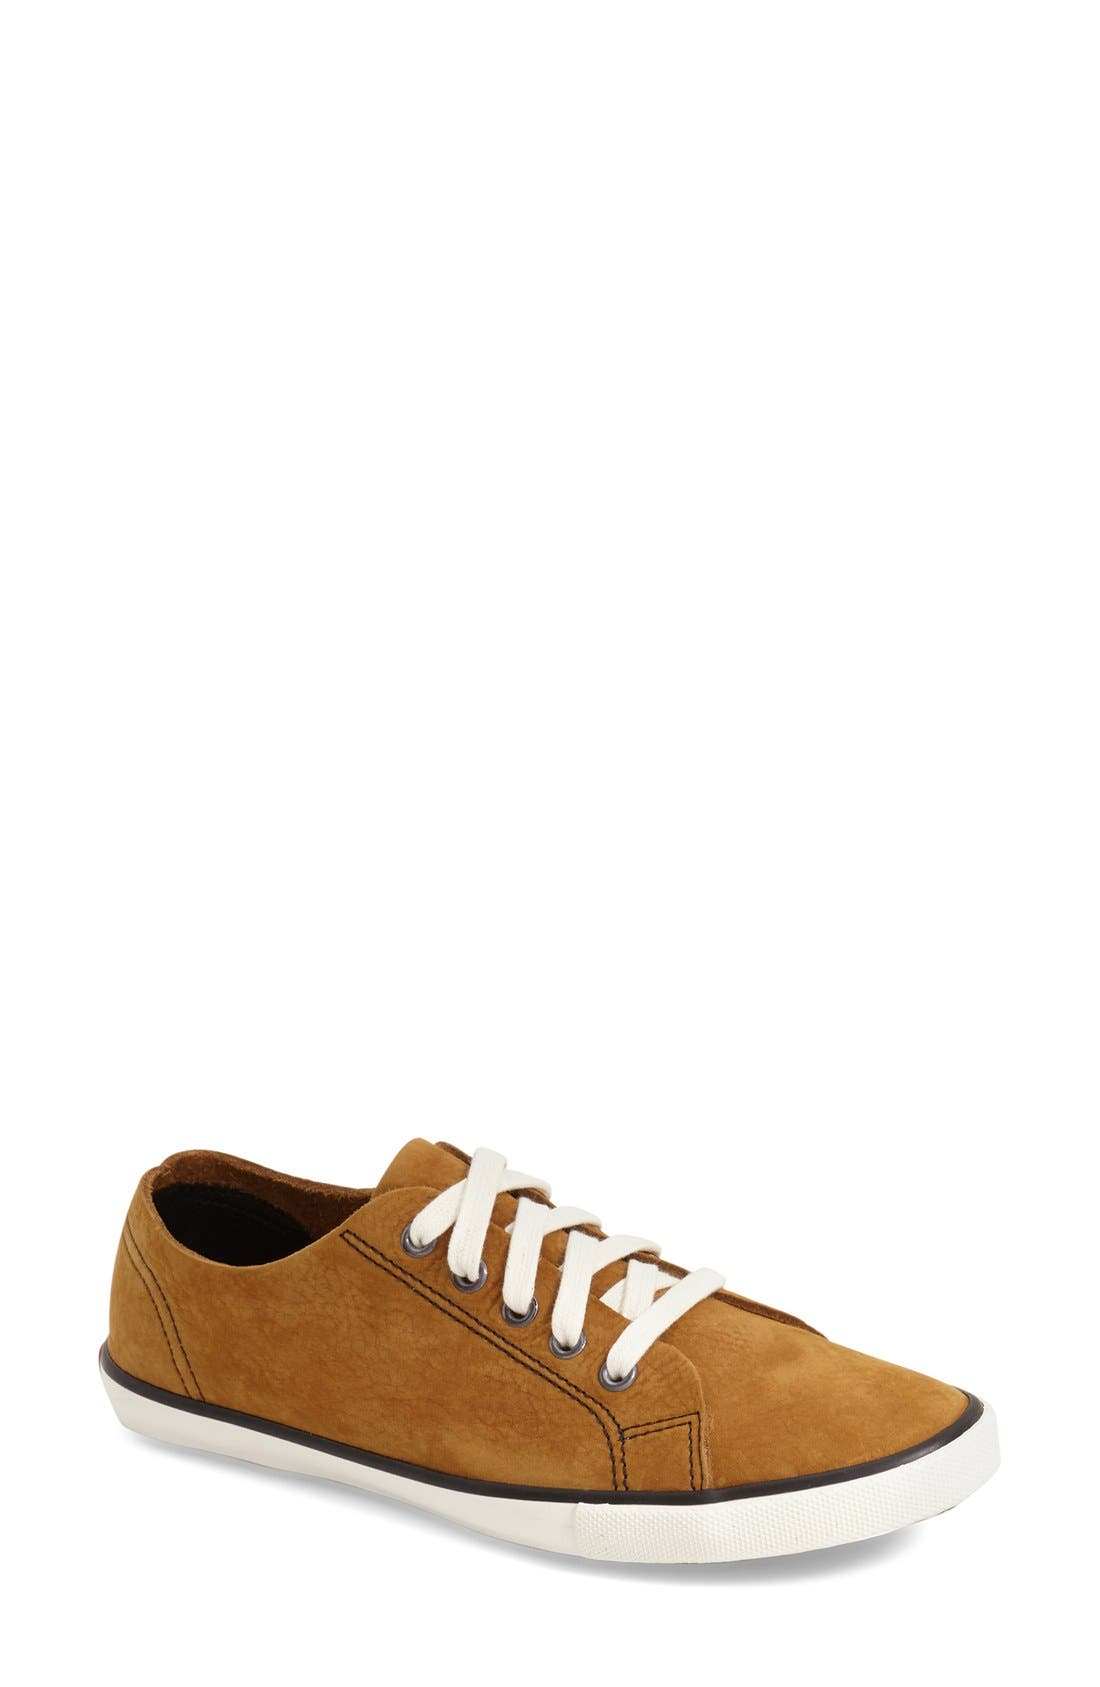 'Strand' Low-Top Sneaker,                         Main,                         color, 240